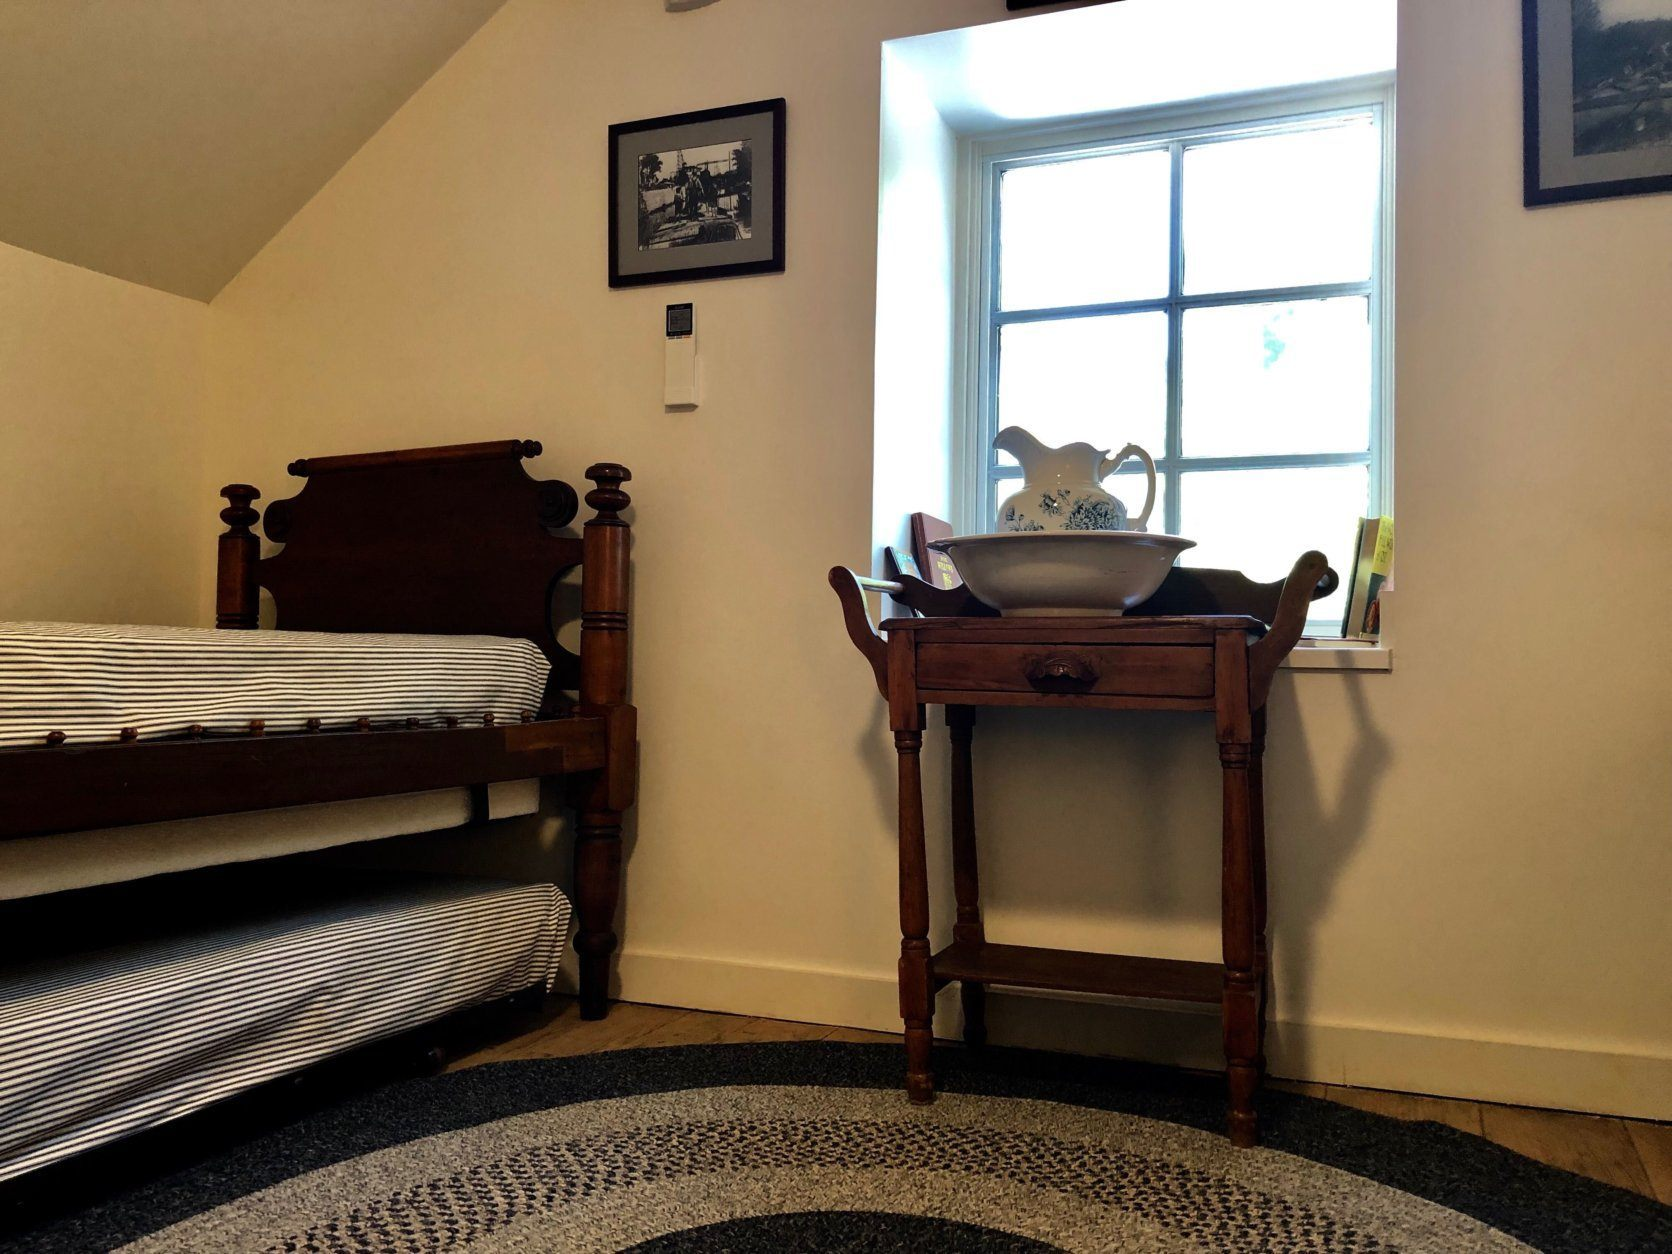 Trundle beds in the upstairs room in Swains Lockhouse. The Lockhouse can sleep up to 8 people. (WTOP/Kate Ryan)